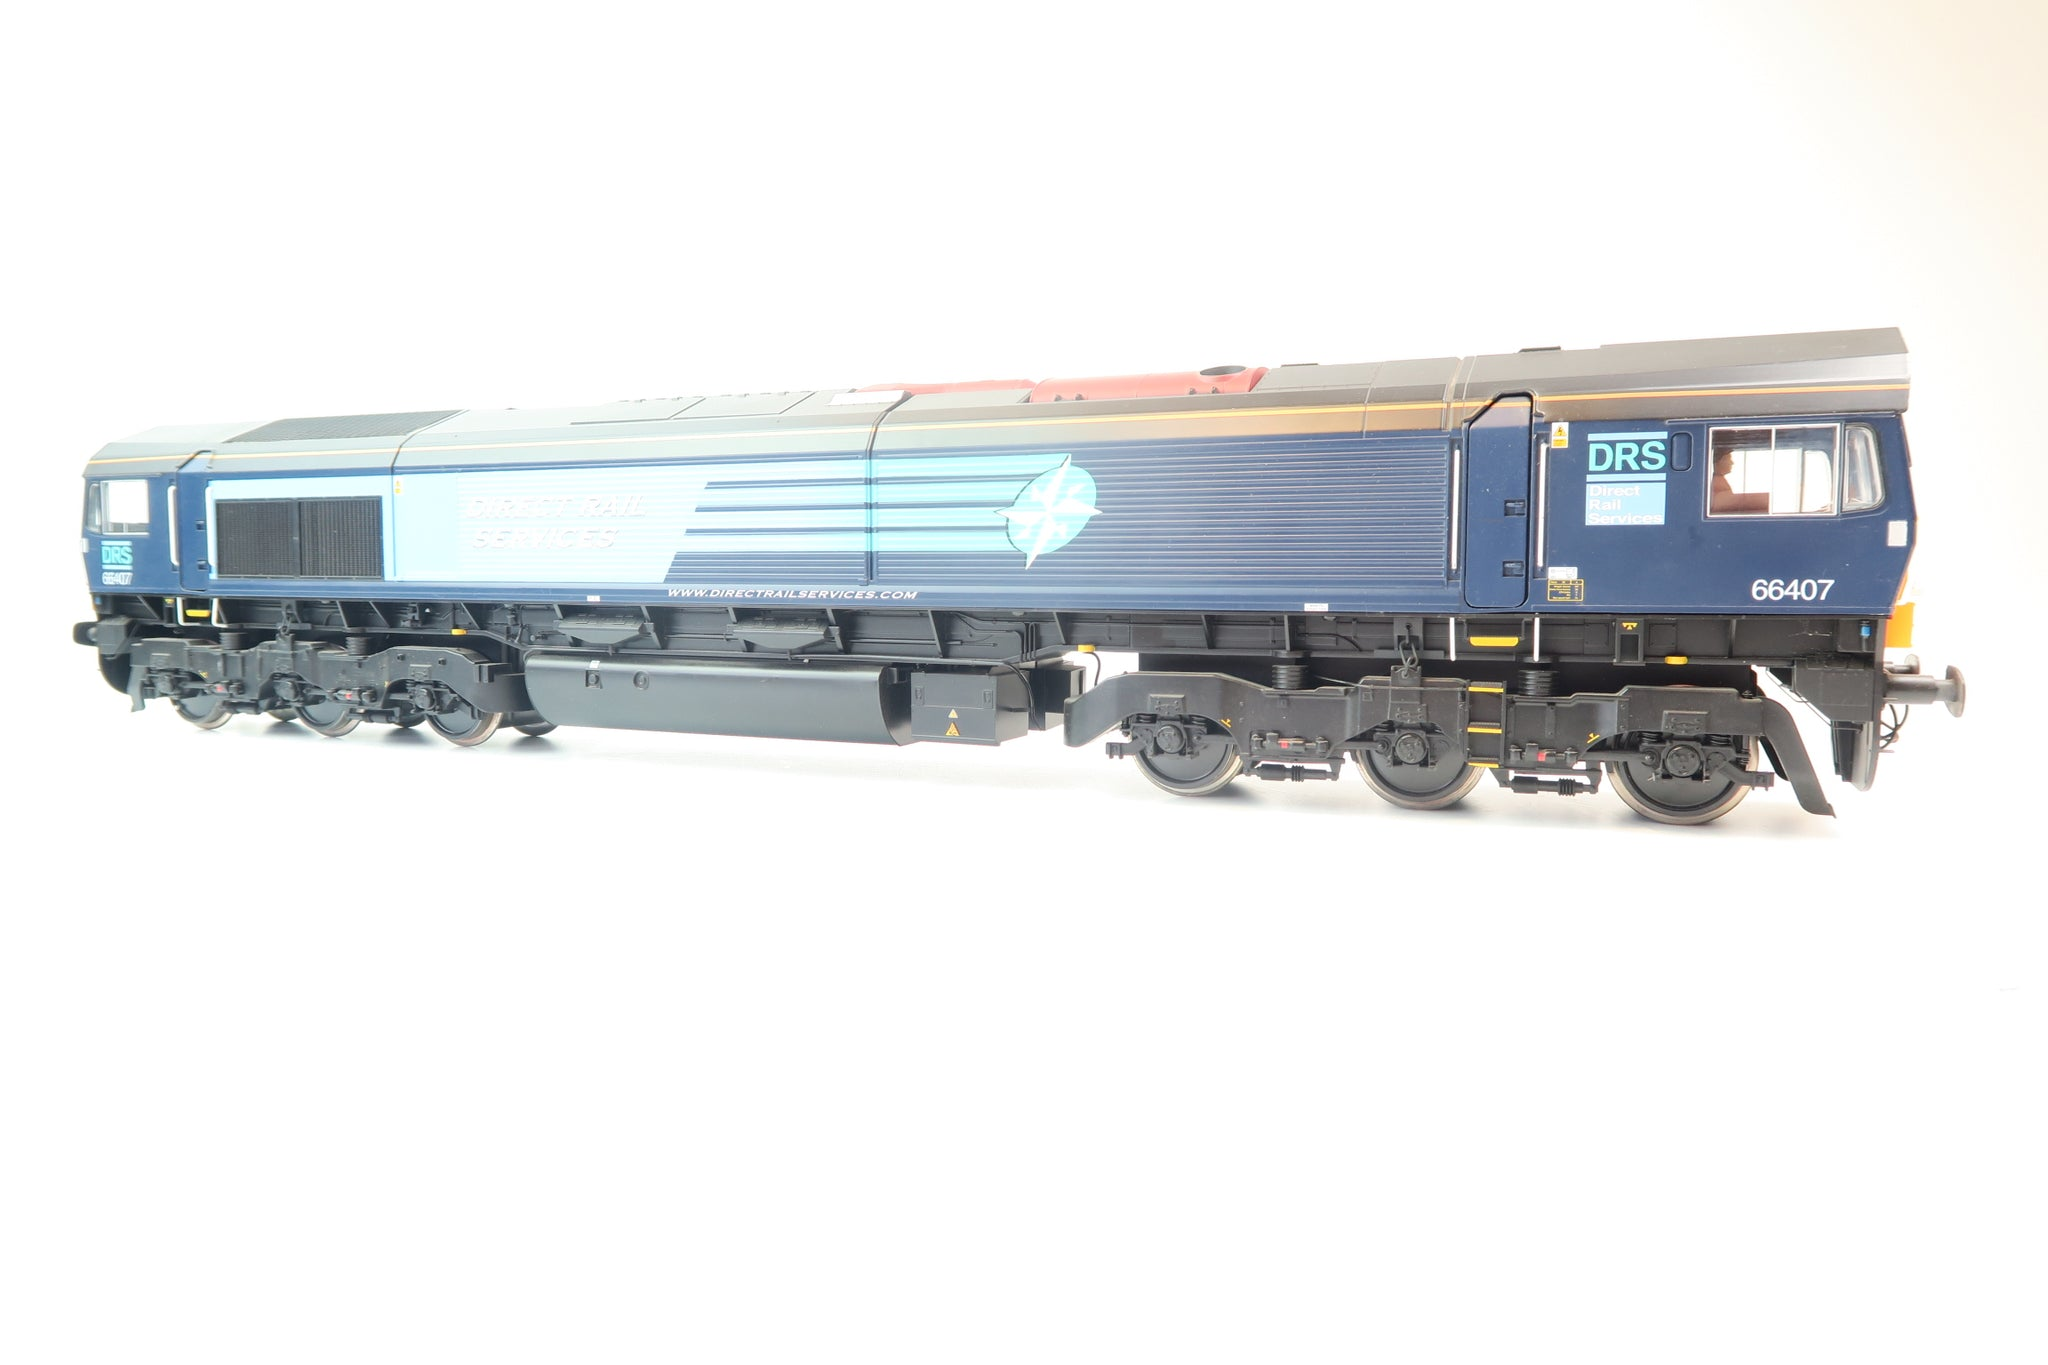 Aristocraft Gauge 1 23214 Class 66 Direct Rail Services DRS '66407'